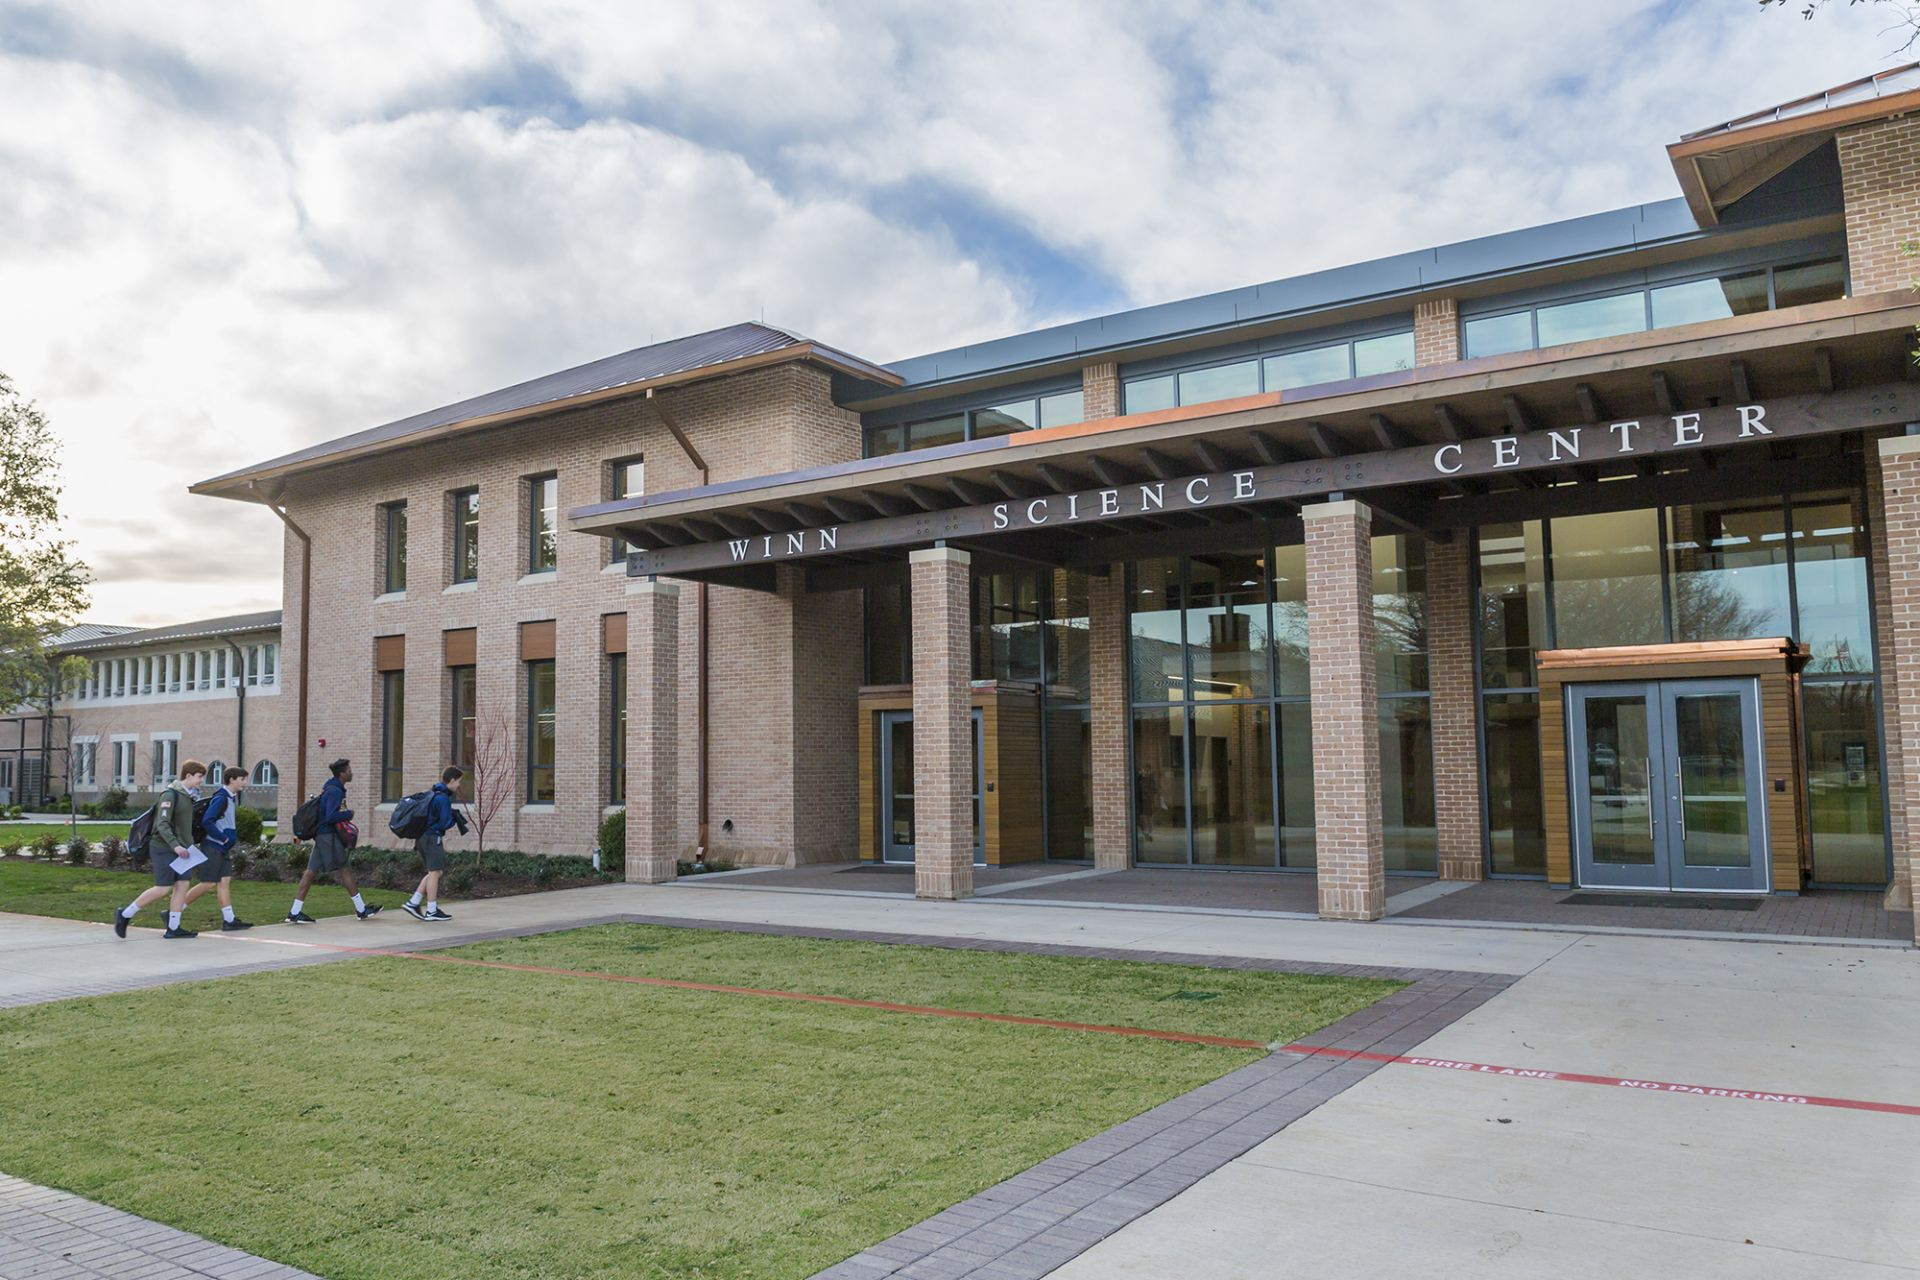 Opened in January 2019, the new Winn Science Center provides a state-of-the-art learning environment that will benefit Marksmen for generations to come. Crews are currently renovating the existing McDermott-Green Physical Science Center, bringing its 25,000 square-feet of classrooms, labs, and officers into the 21st century.